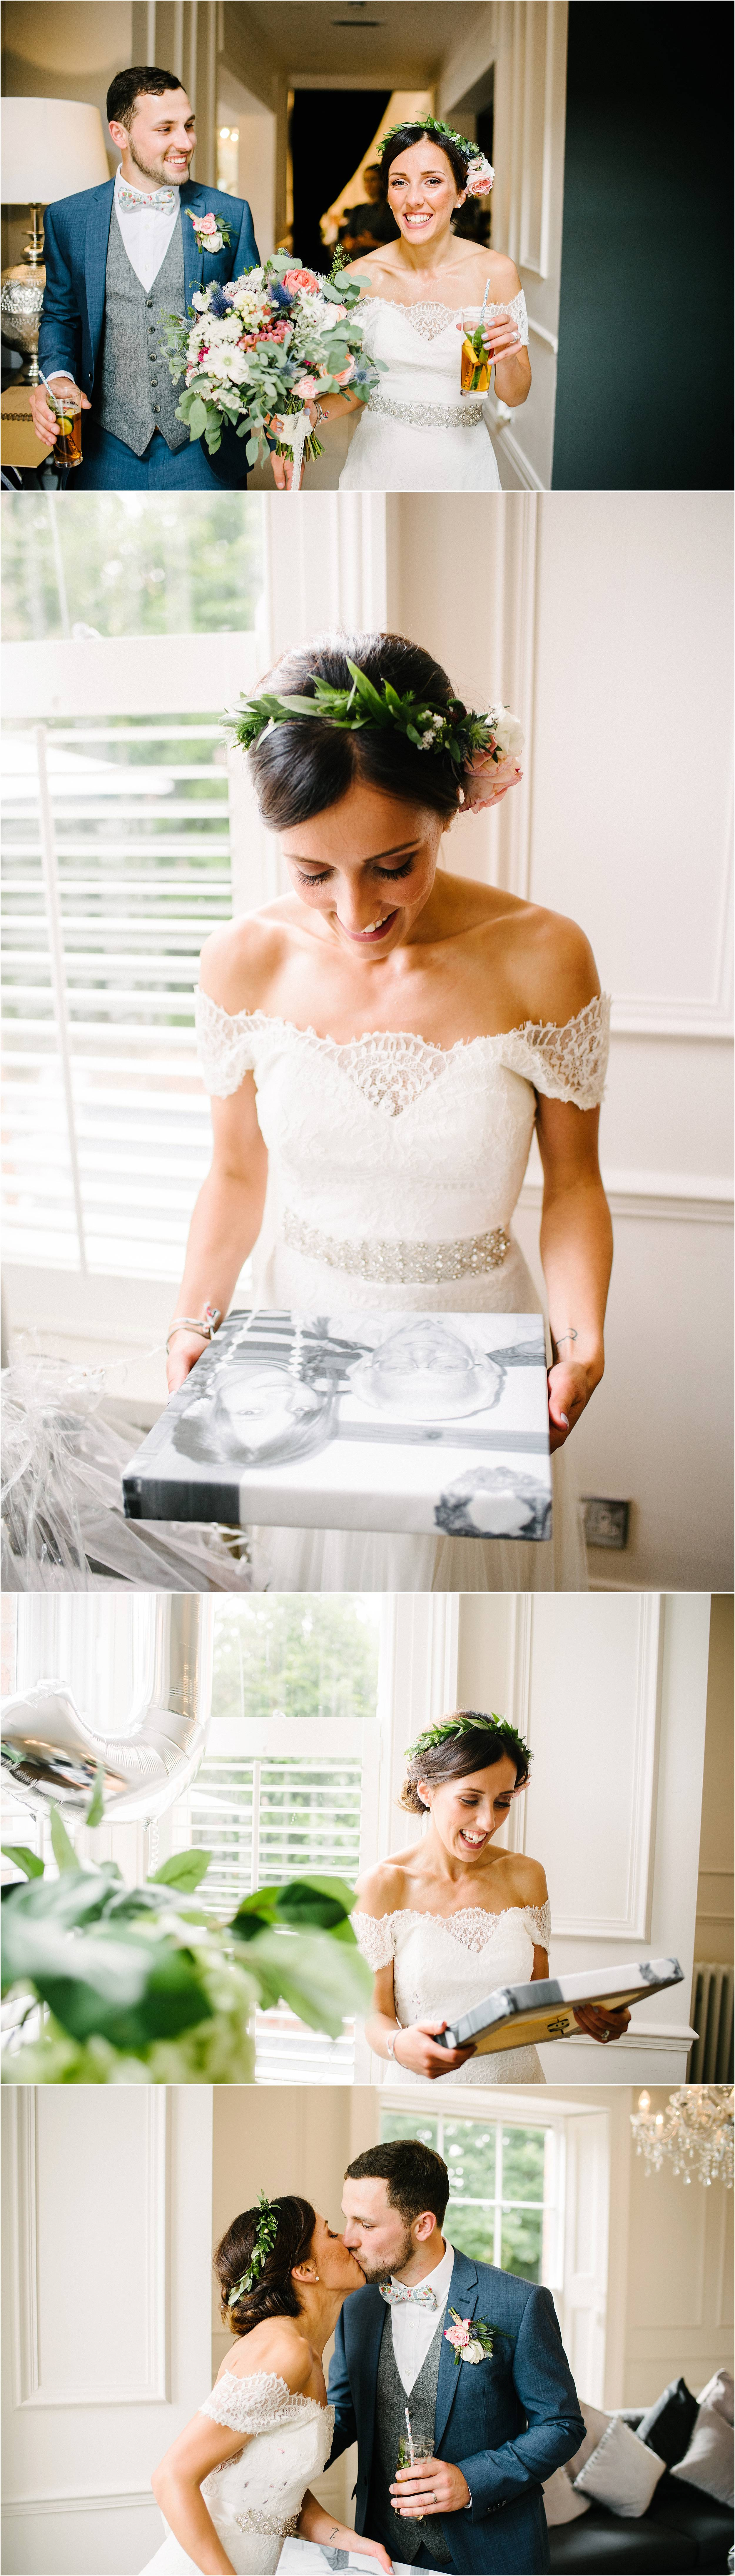 The Old Vicarage Boutique Wedding Photographer_0085.jpg